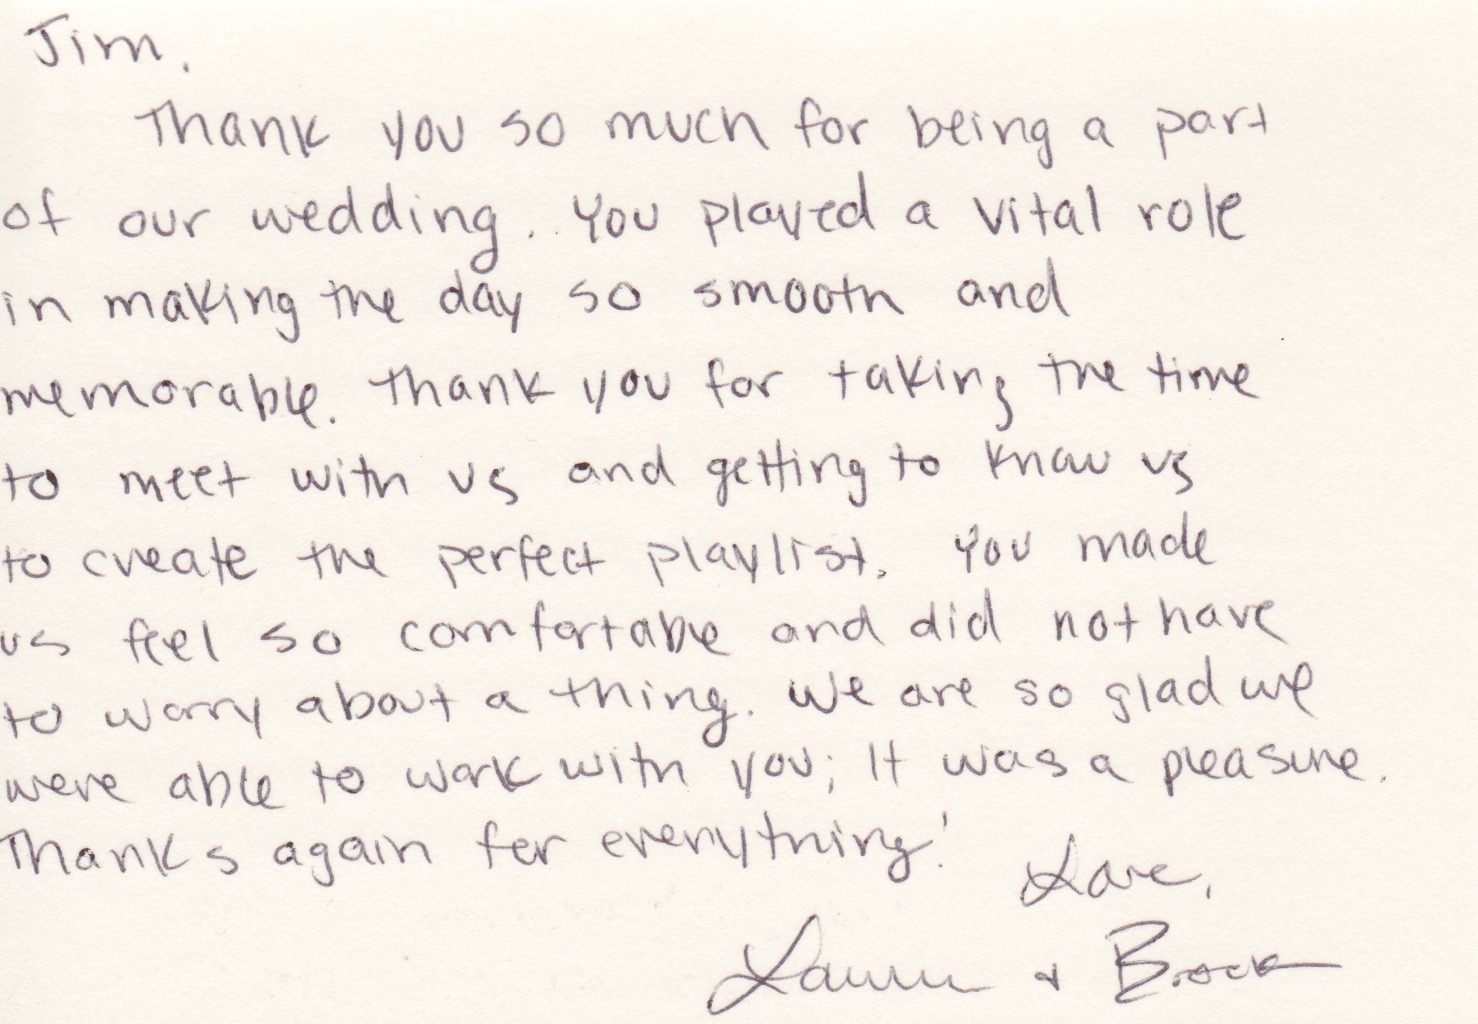 Thank You - Lauren & Brock 2 1.jpeg